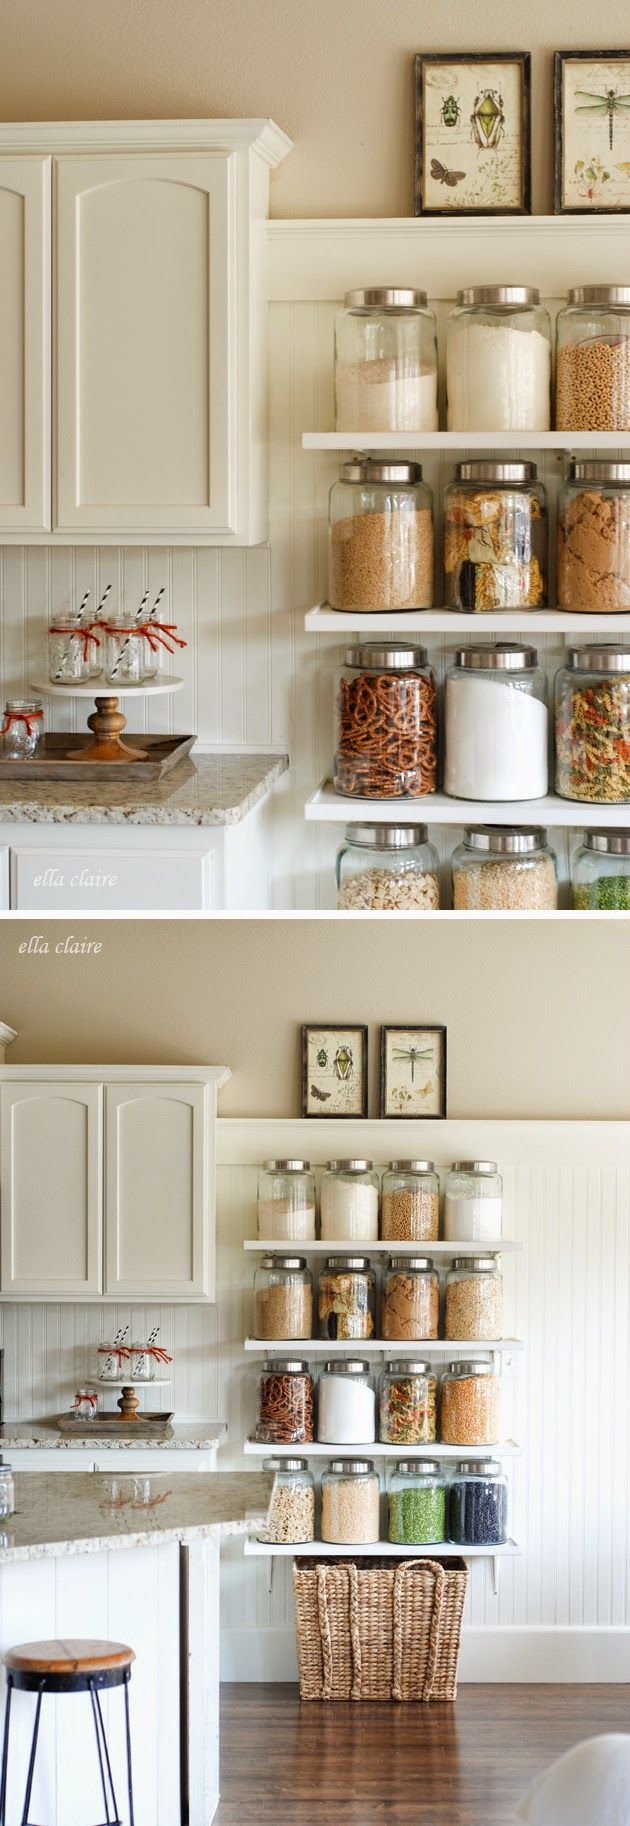 DIY Country Store Kitchen Shelves | Glass canisters, Shelving and Pantry